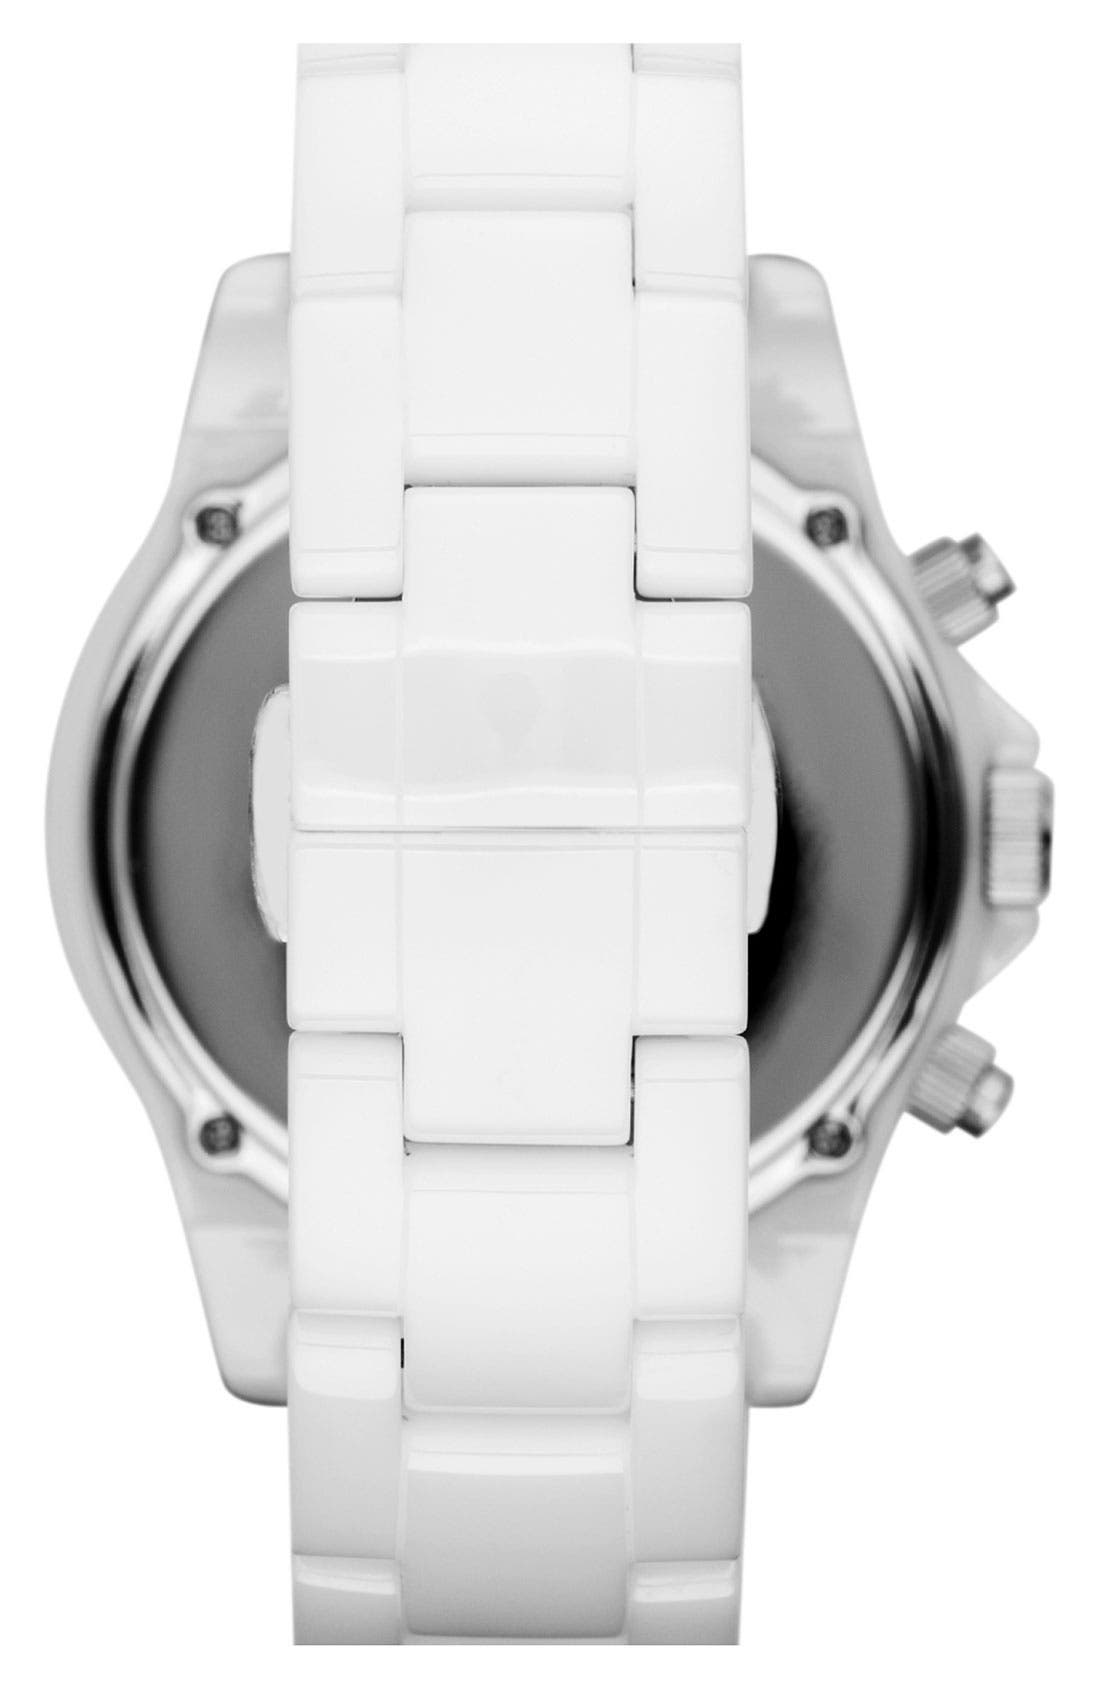 Alternate Image 3  - Michael Kors 'Madison' Crystal Bezel Ceramic Watch, 41mm